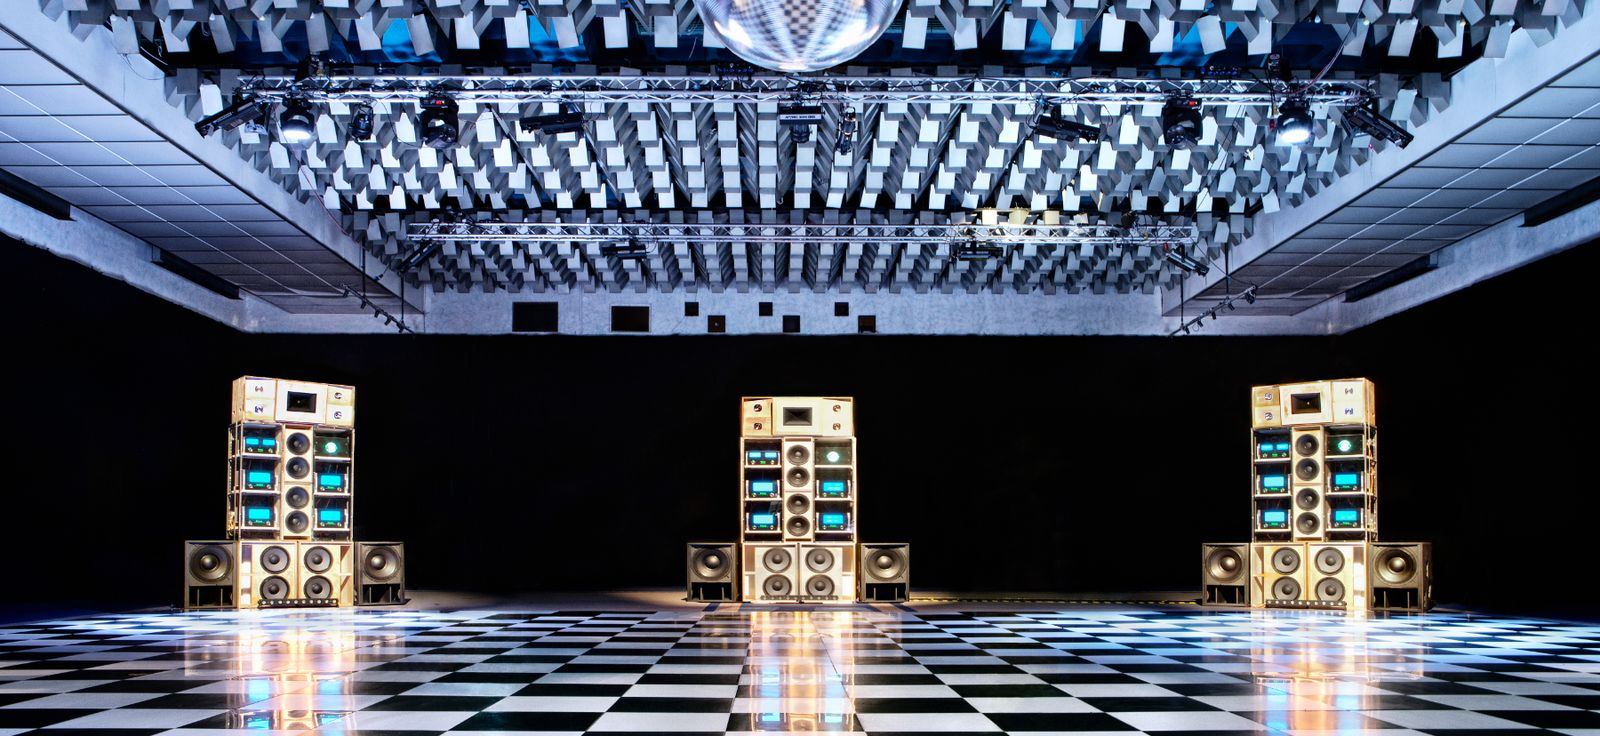 McIntosh Despacio - The Sound System to Drown Out All Sound Systems